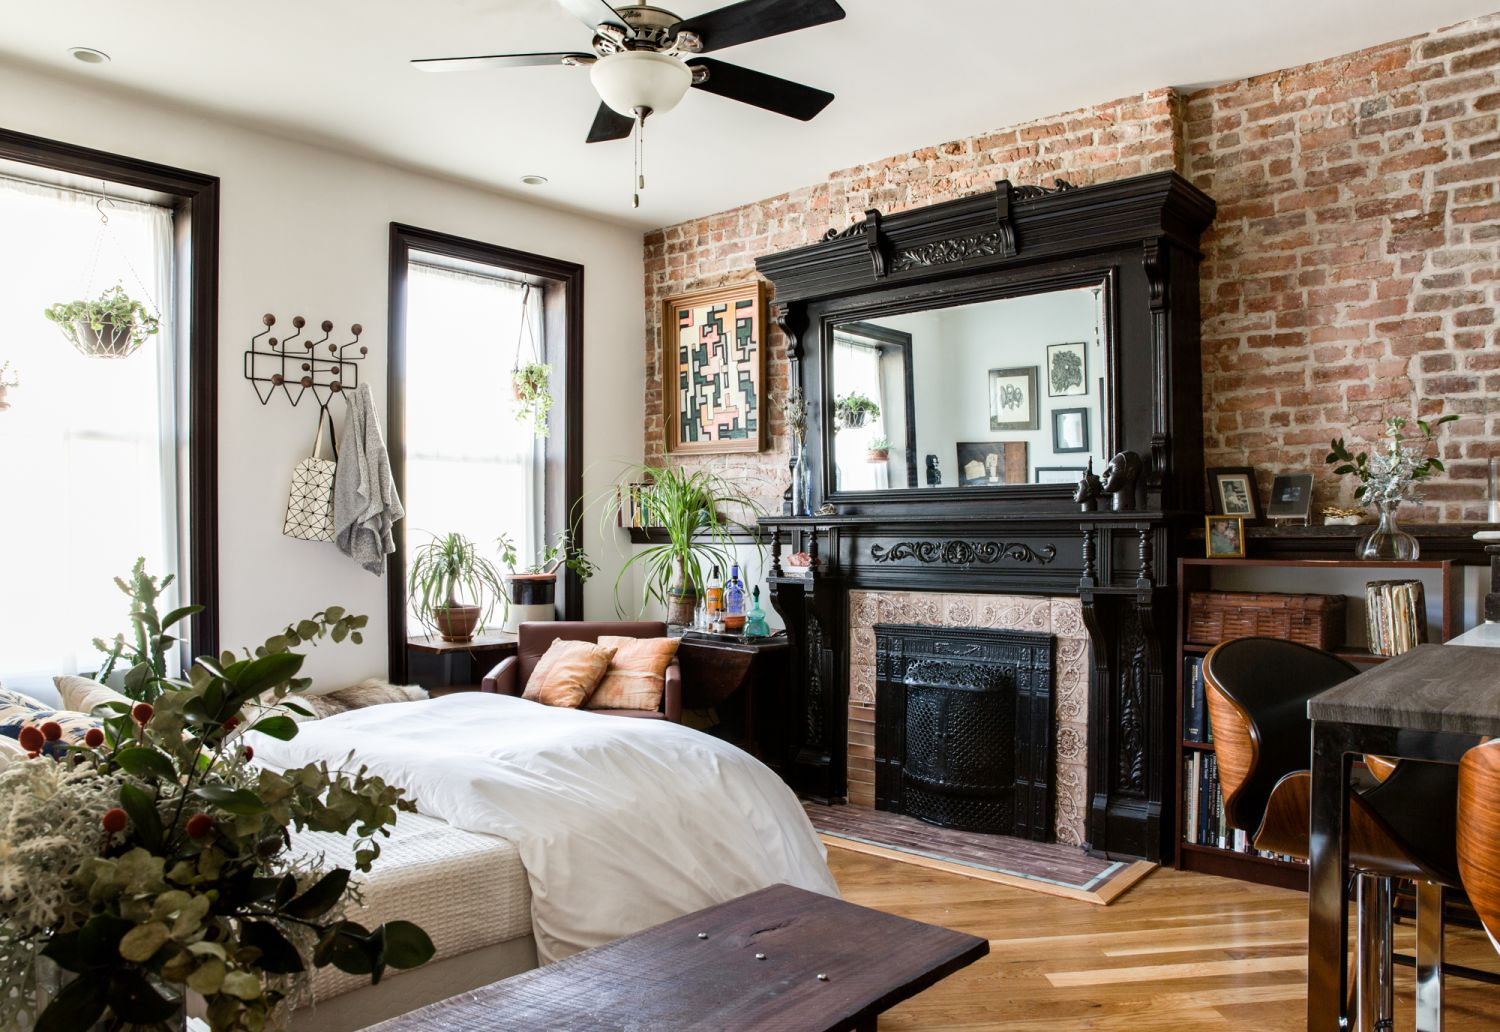 Making Small the Greatest of All: Our Best Posts this Year on Smart Small Space Living